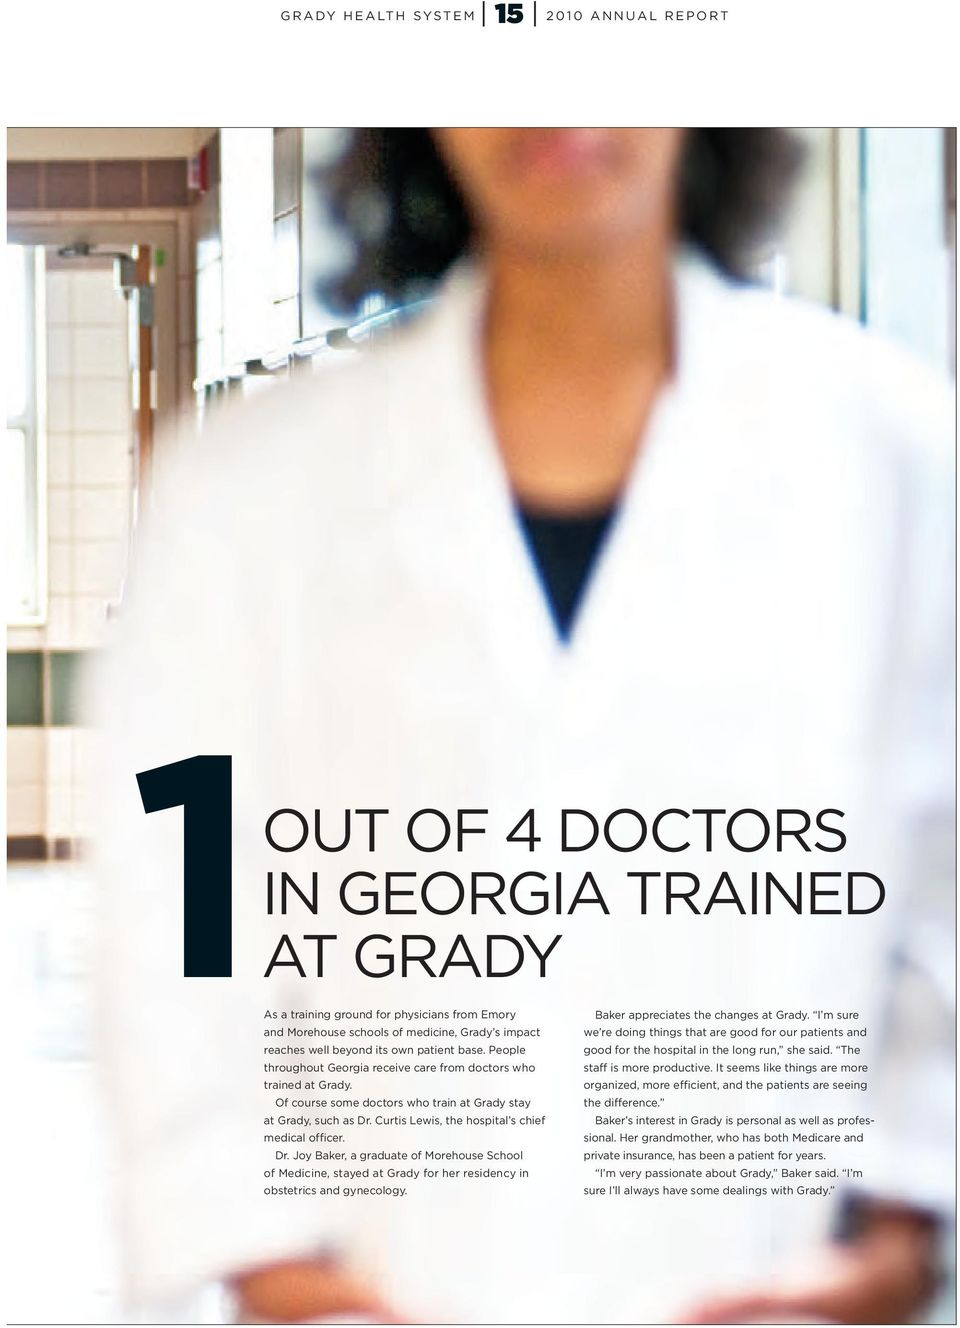 Of course some doctors who train at Grady stay at Grady, such as Dr. Curtis Lewis, the hospital s chief medical officer. Dr. Joy Baker, a graduate of Morehouse School of Medicine, stayed at Grady for her residency in obstetrics and gynecology.